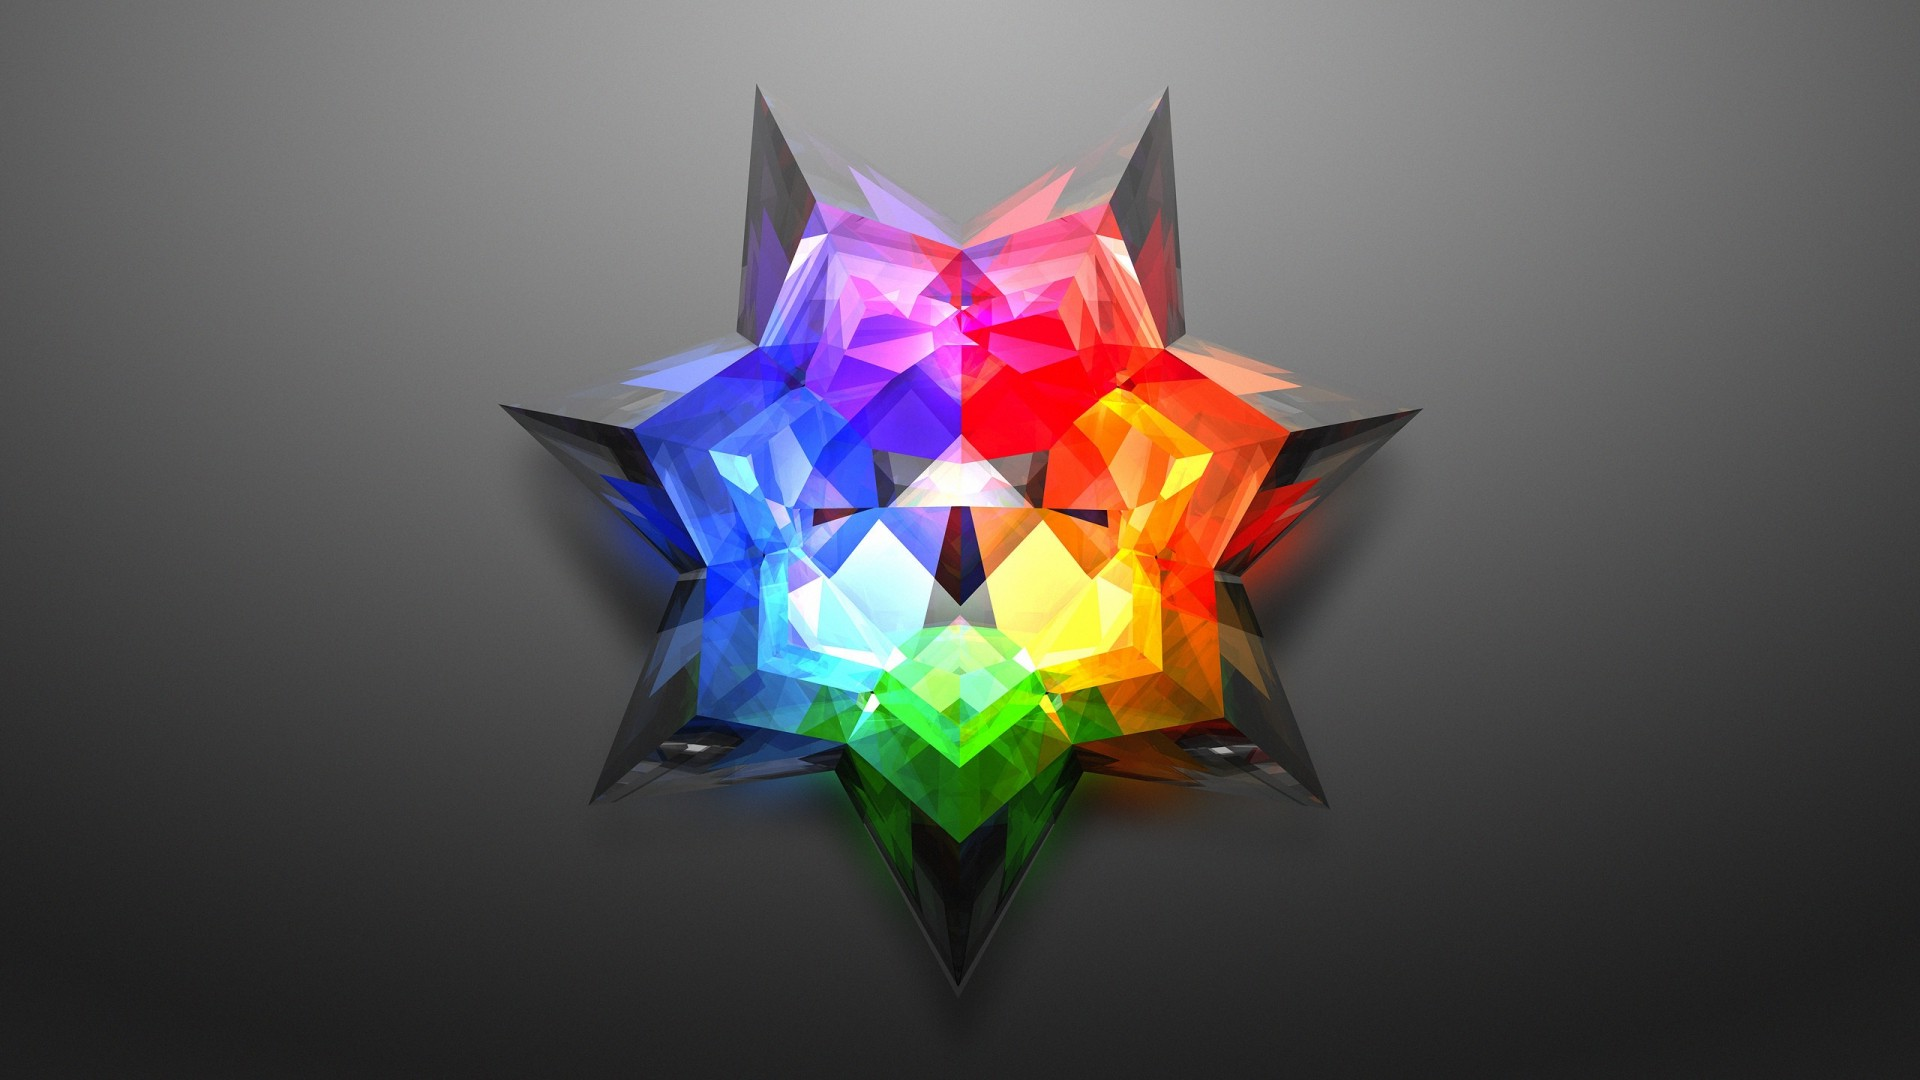 digital Art Minimalism Colorful Abstract Low Poly